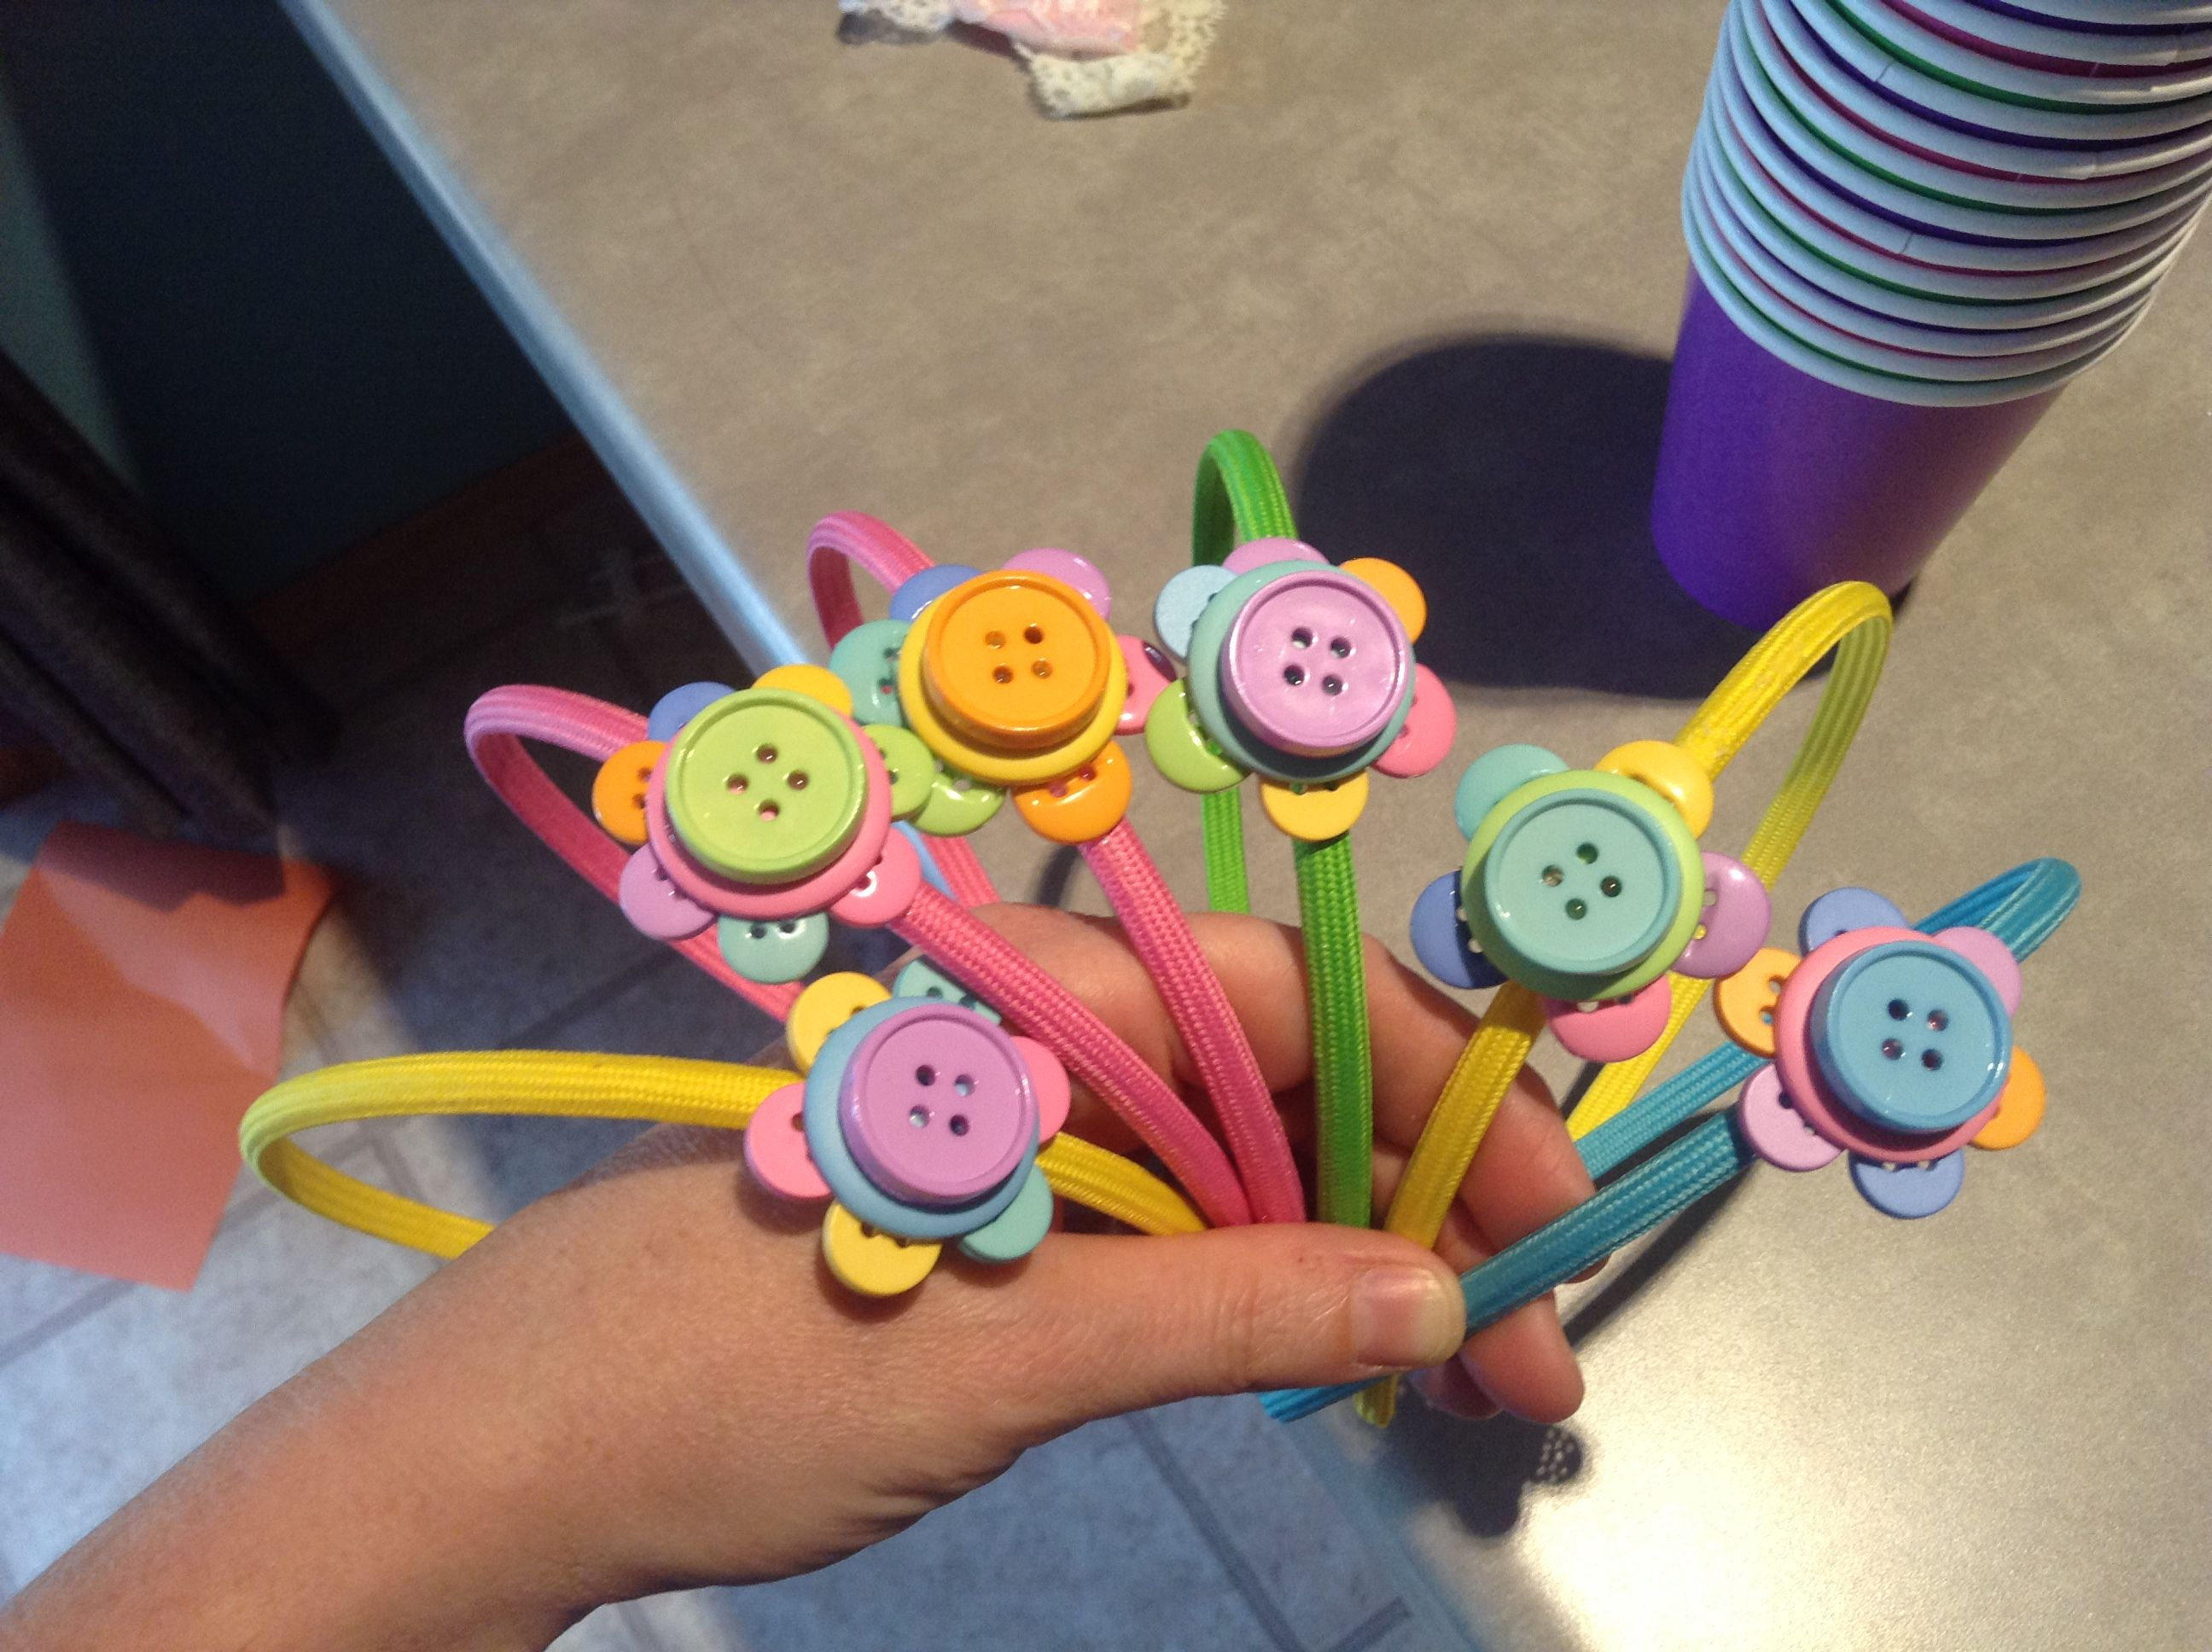 My version of Lalaloopsy button headbands for the girls coming to the party :)